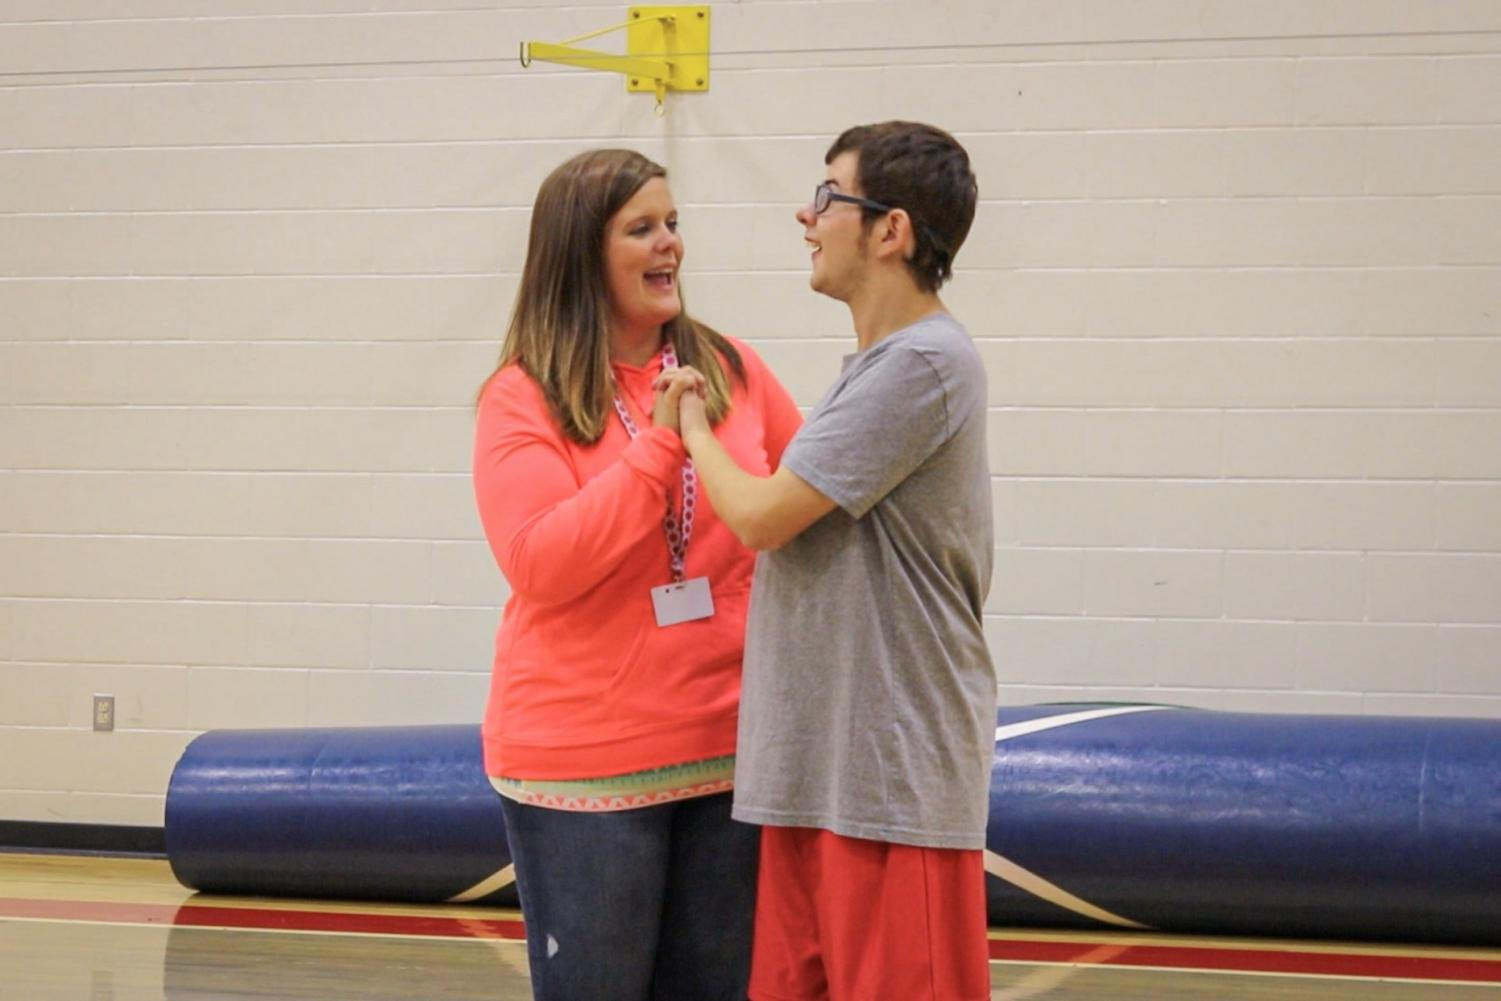 Celebrating junior Braden High's homerun, Instructional Assistant Katie Hoben is congratulating High on his hard work and dedication while playing baseball. Bullitt East offers two adaptive classes, P.E. and music alive, which contains  special needs students along with peer partners.